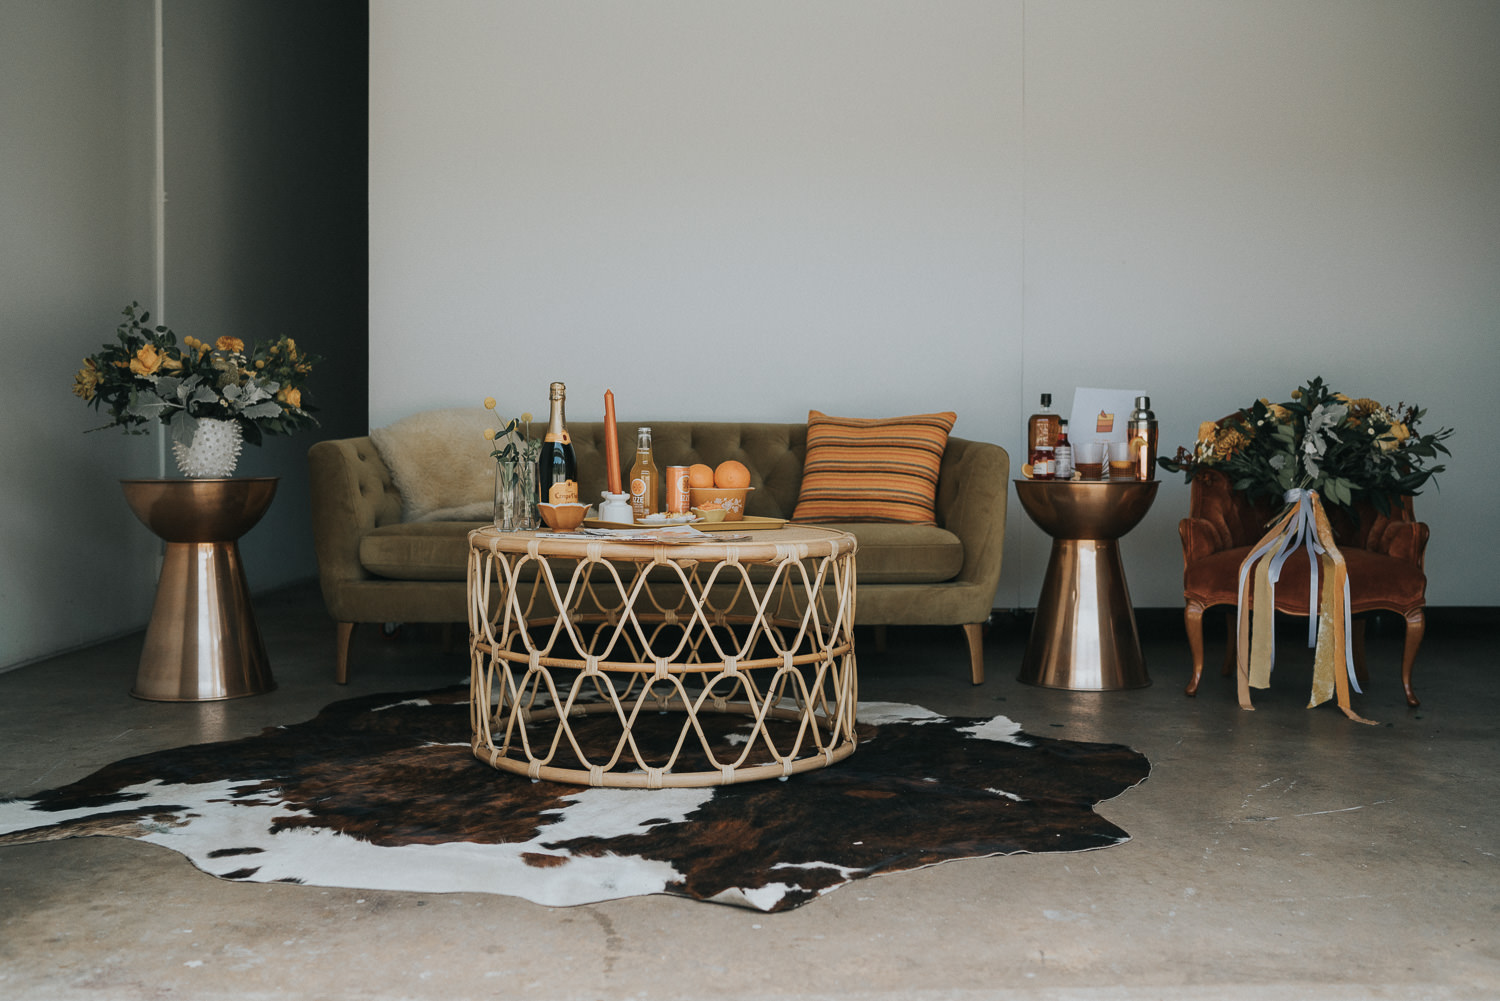 70s Inspired Wedding Lounge with Cowhide Rug and Velvet Couch